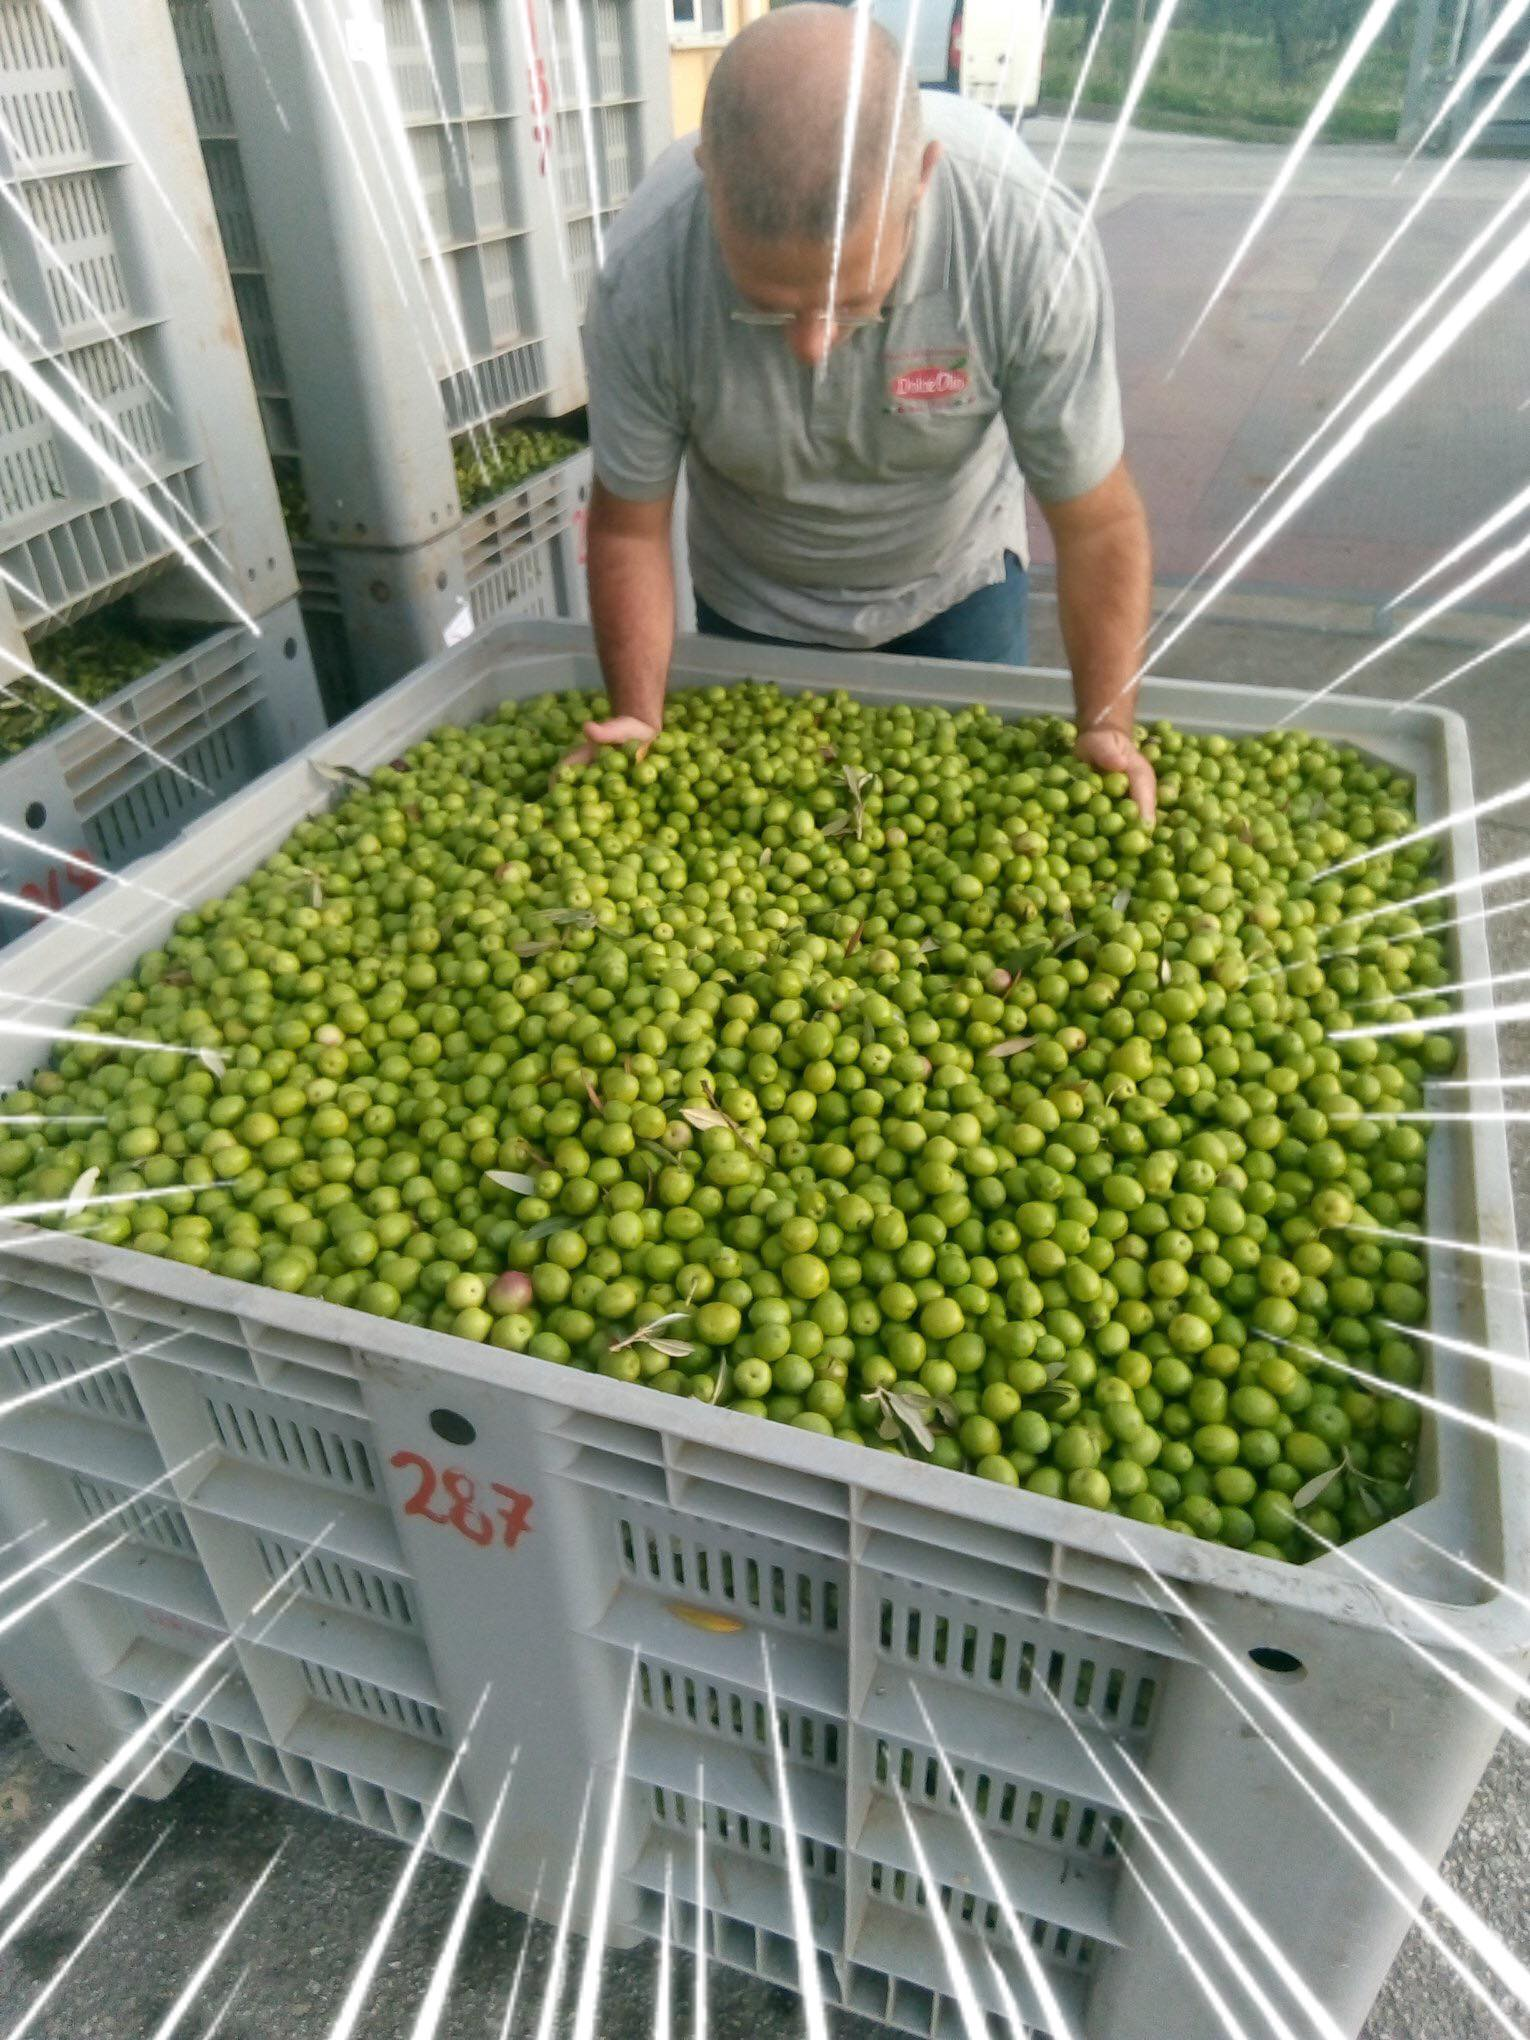 Freshly harvested Biancolilla olives